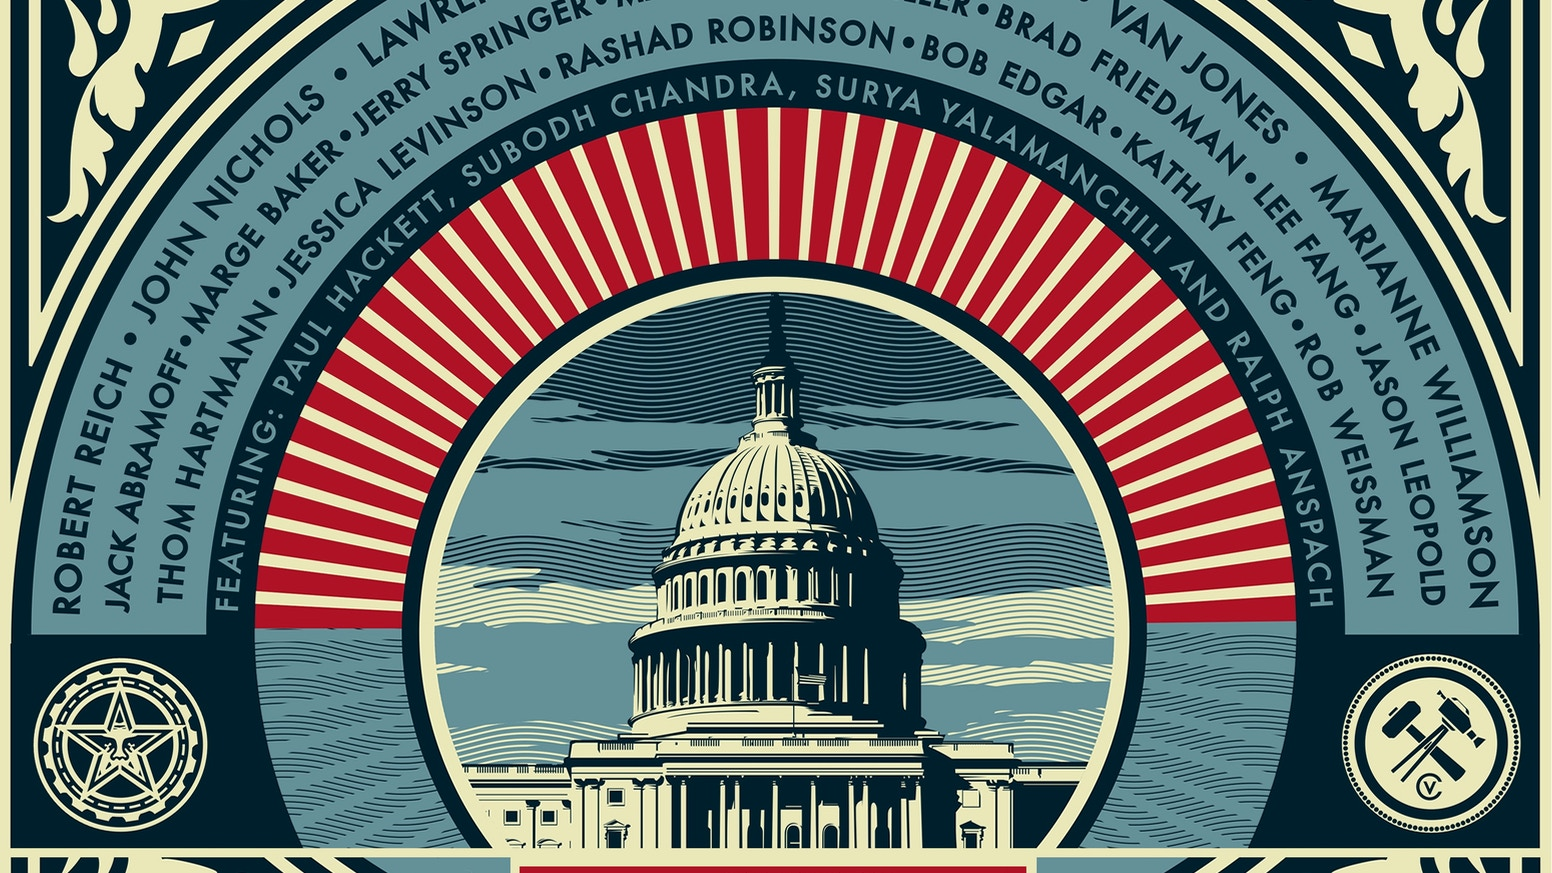 PAY 2 PLAY is a fun documentary chronicles the corrupting influence of money in politics and what we can do fix the system.